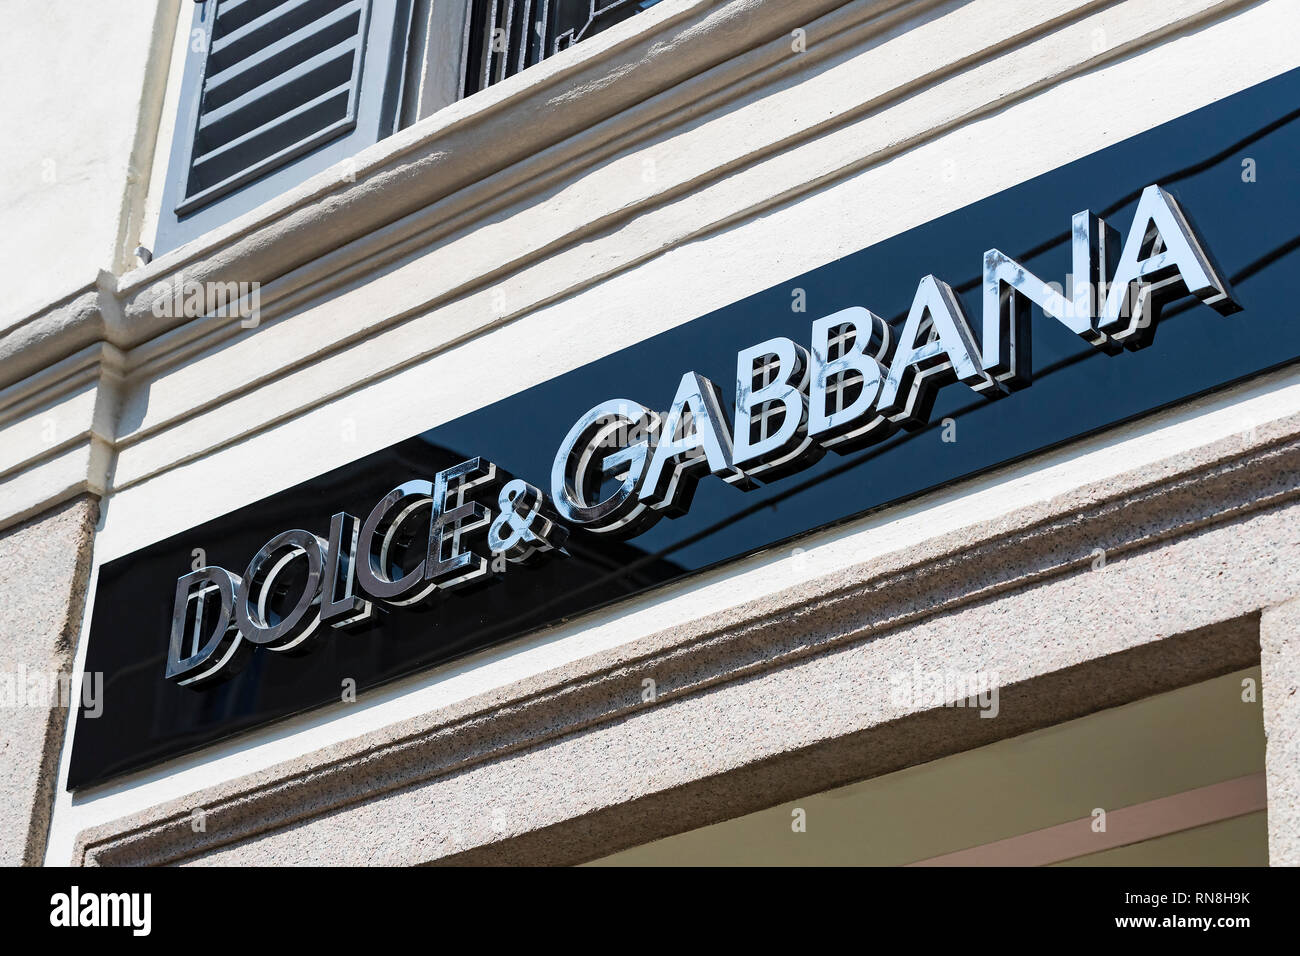 MILAN, ITALY - 2 JUNE, 2018: Logo of the Dolce & Gabbana store on the street of Milan in Italy. - Stock Image